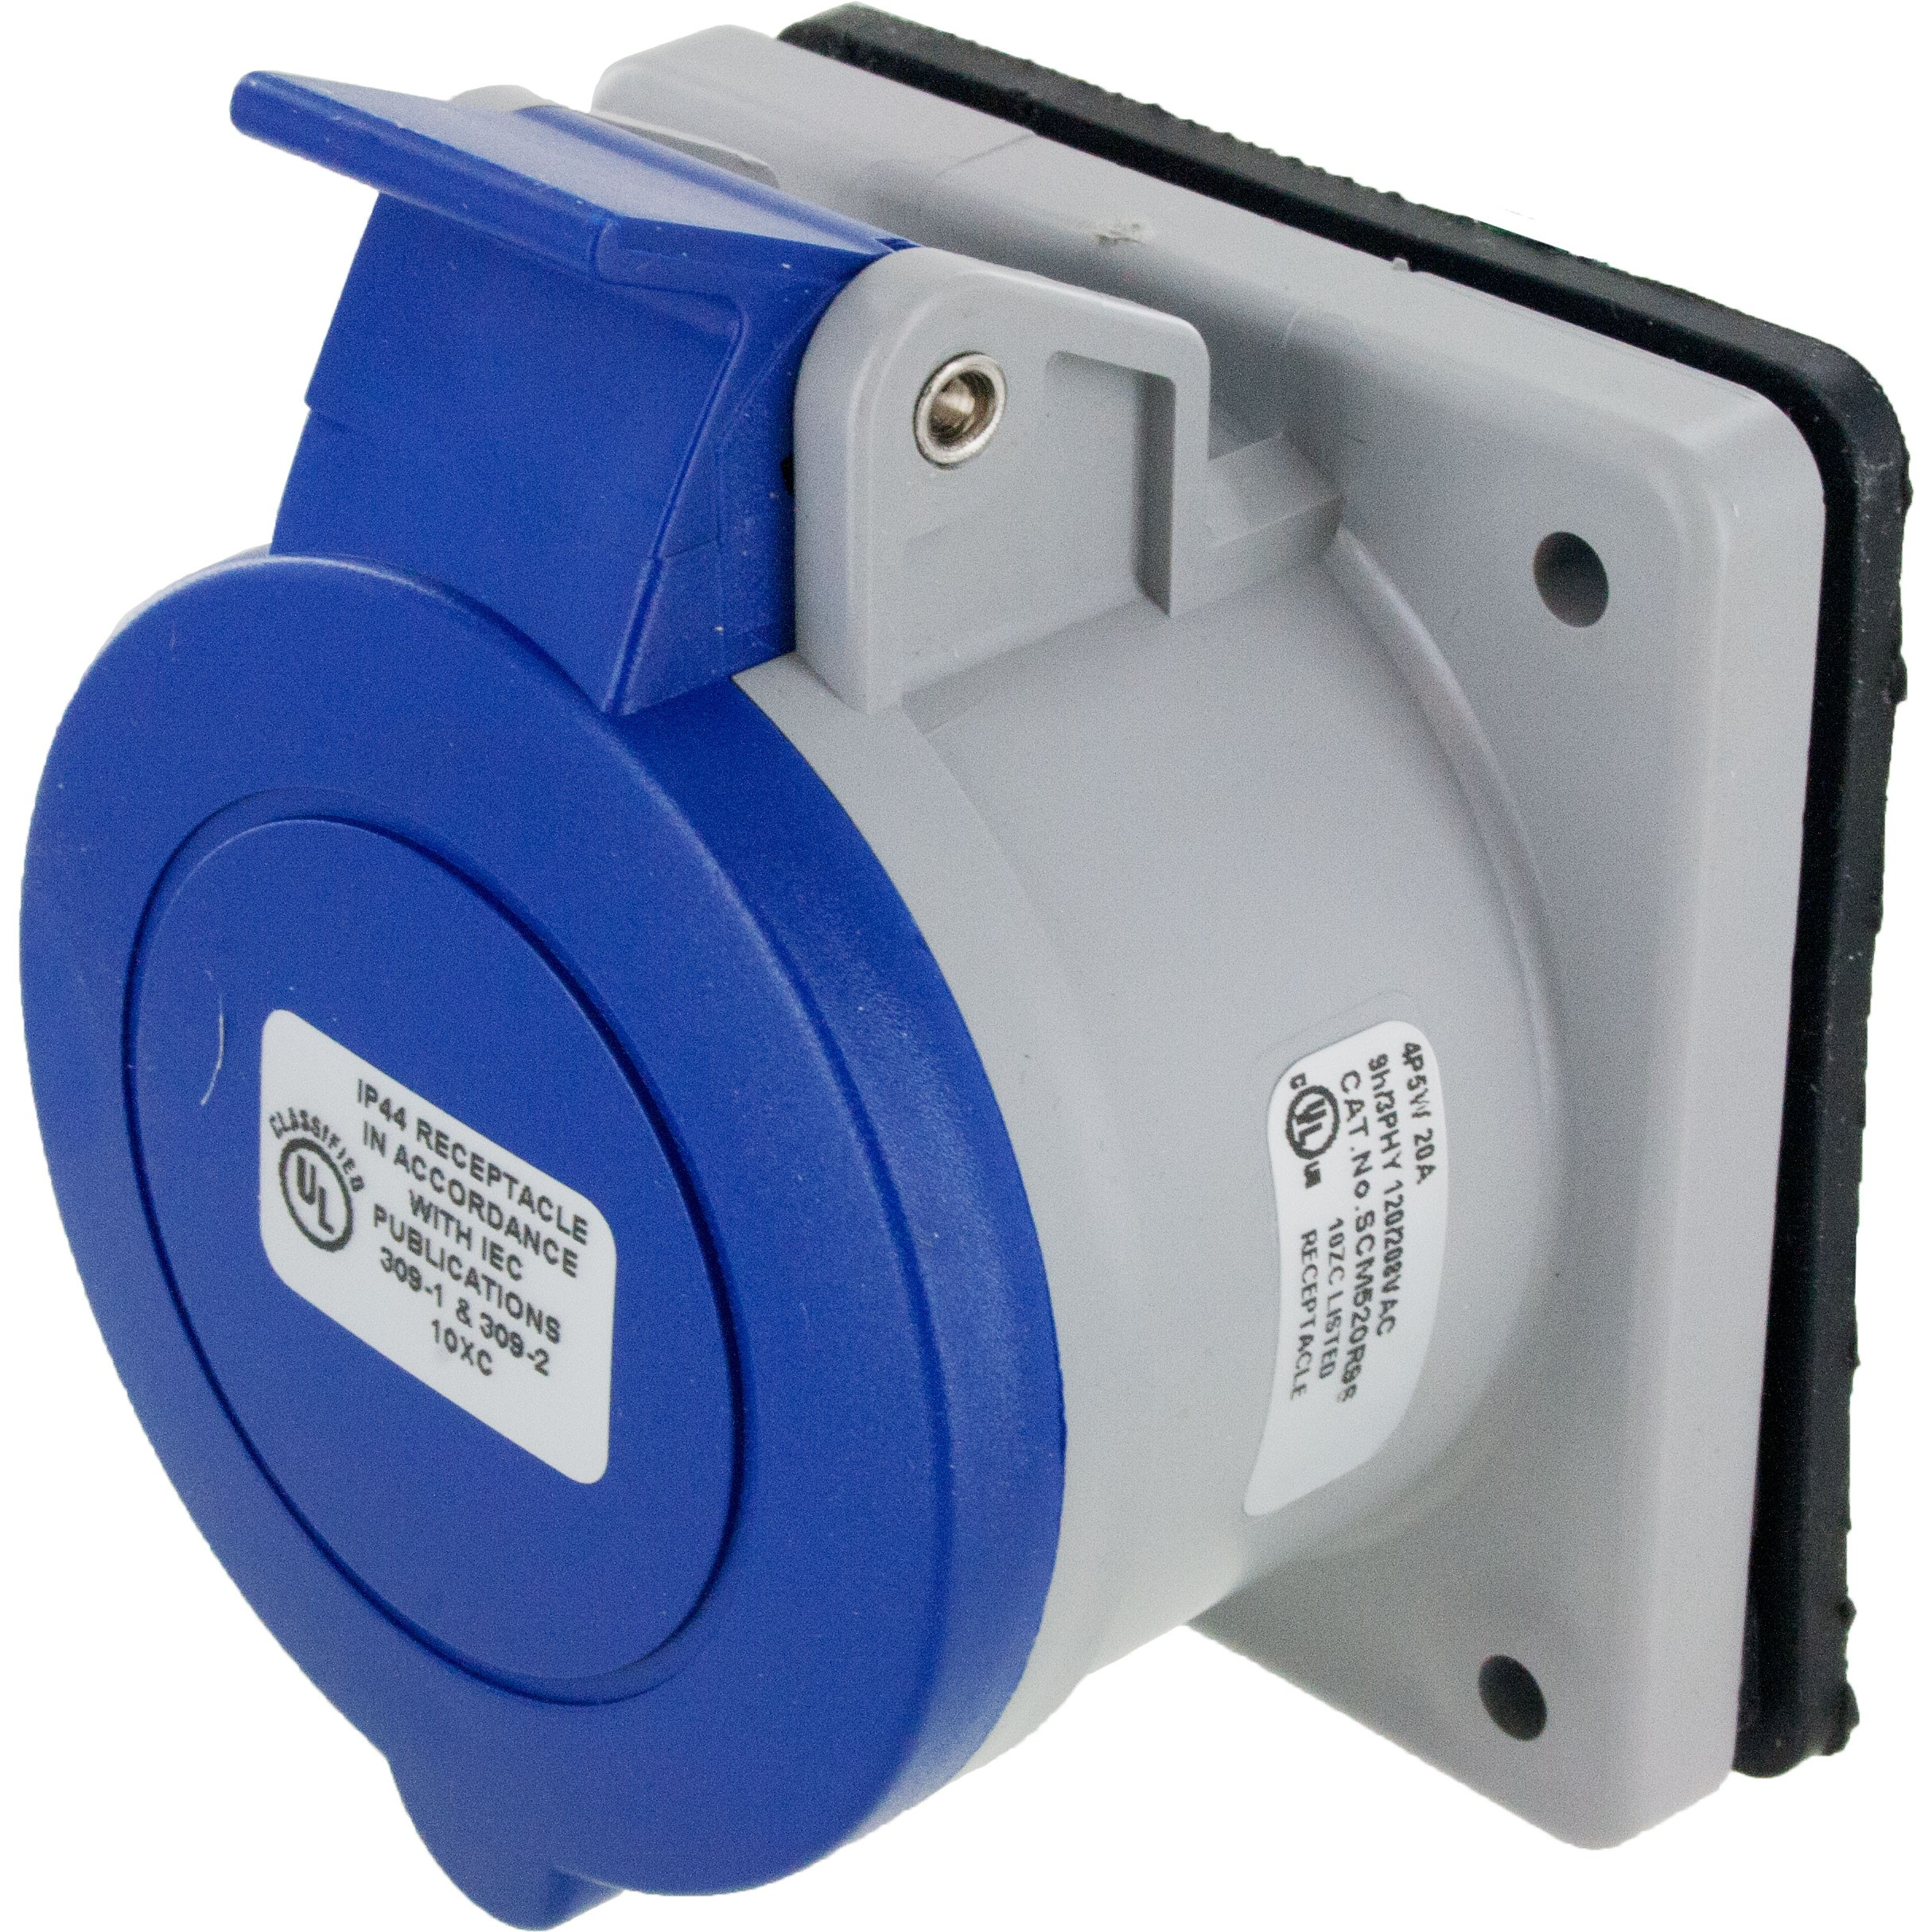 520R9S Pin And Sleeve Receptacle 20 Amp 4 Pole 5 Wire